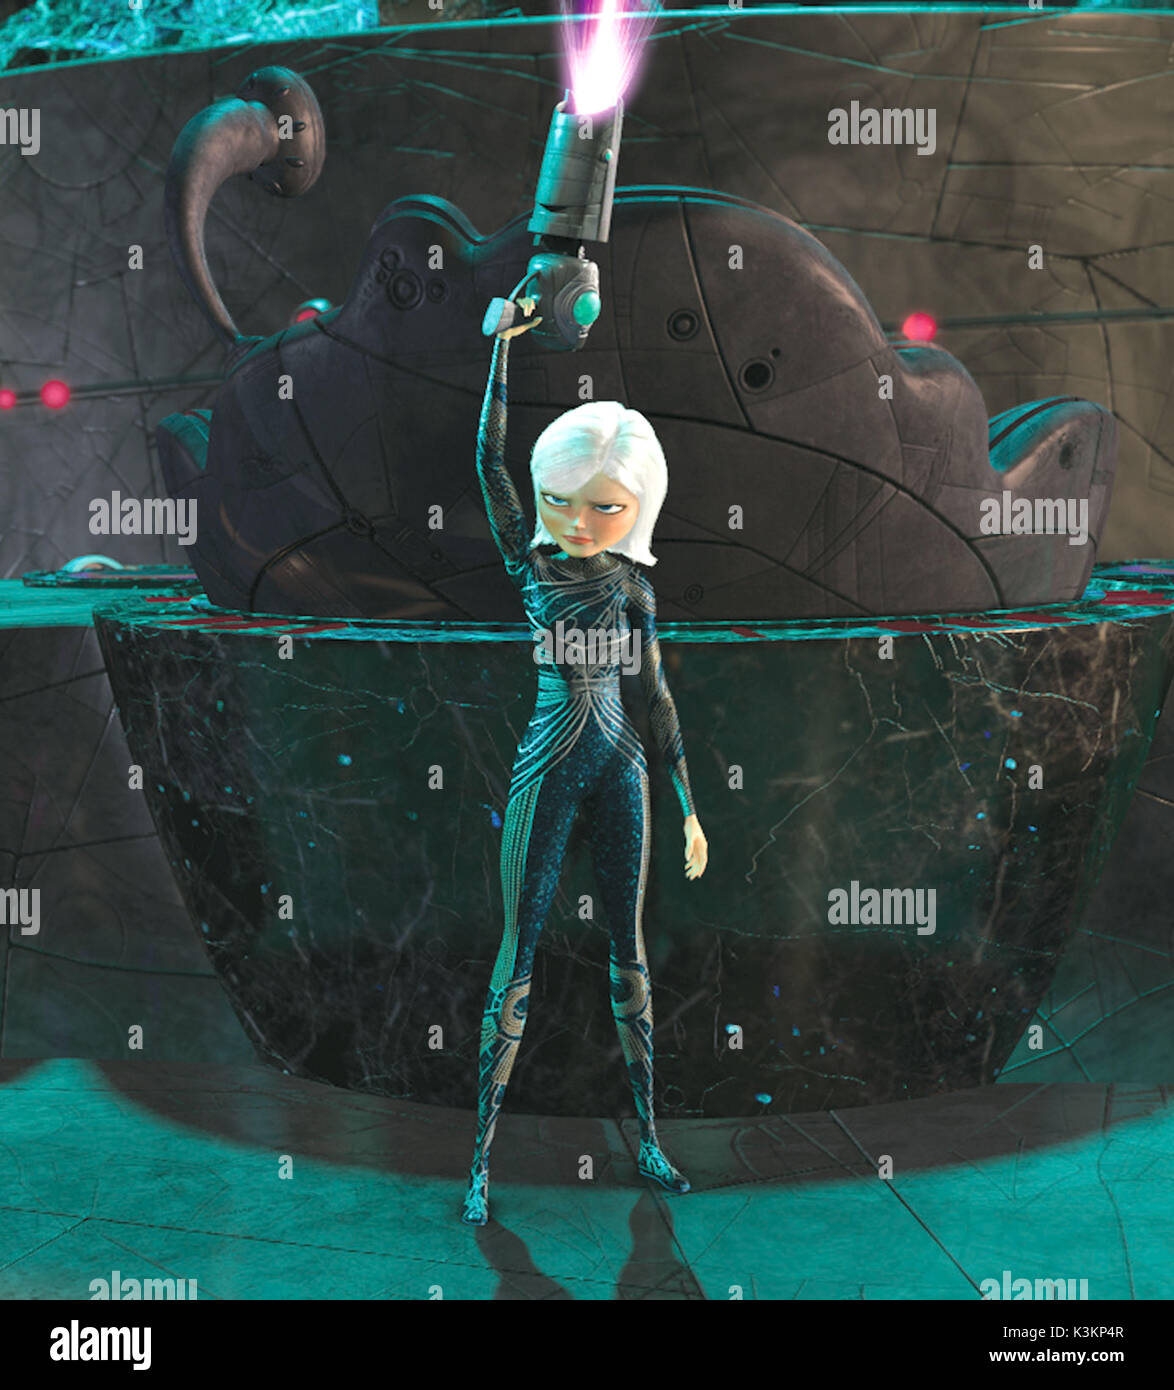 MONSTERS VS ALIENS REESE WITHERSPOON voices Ginormica        Date: 2009 - Stock Image